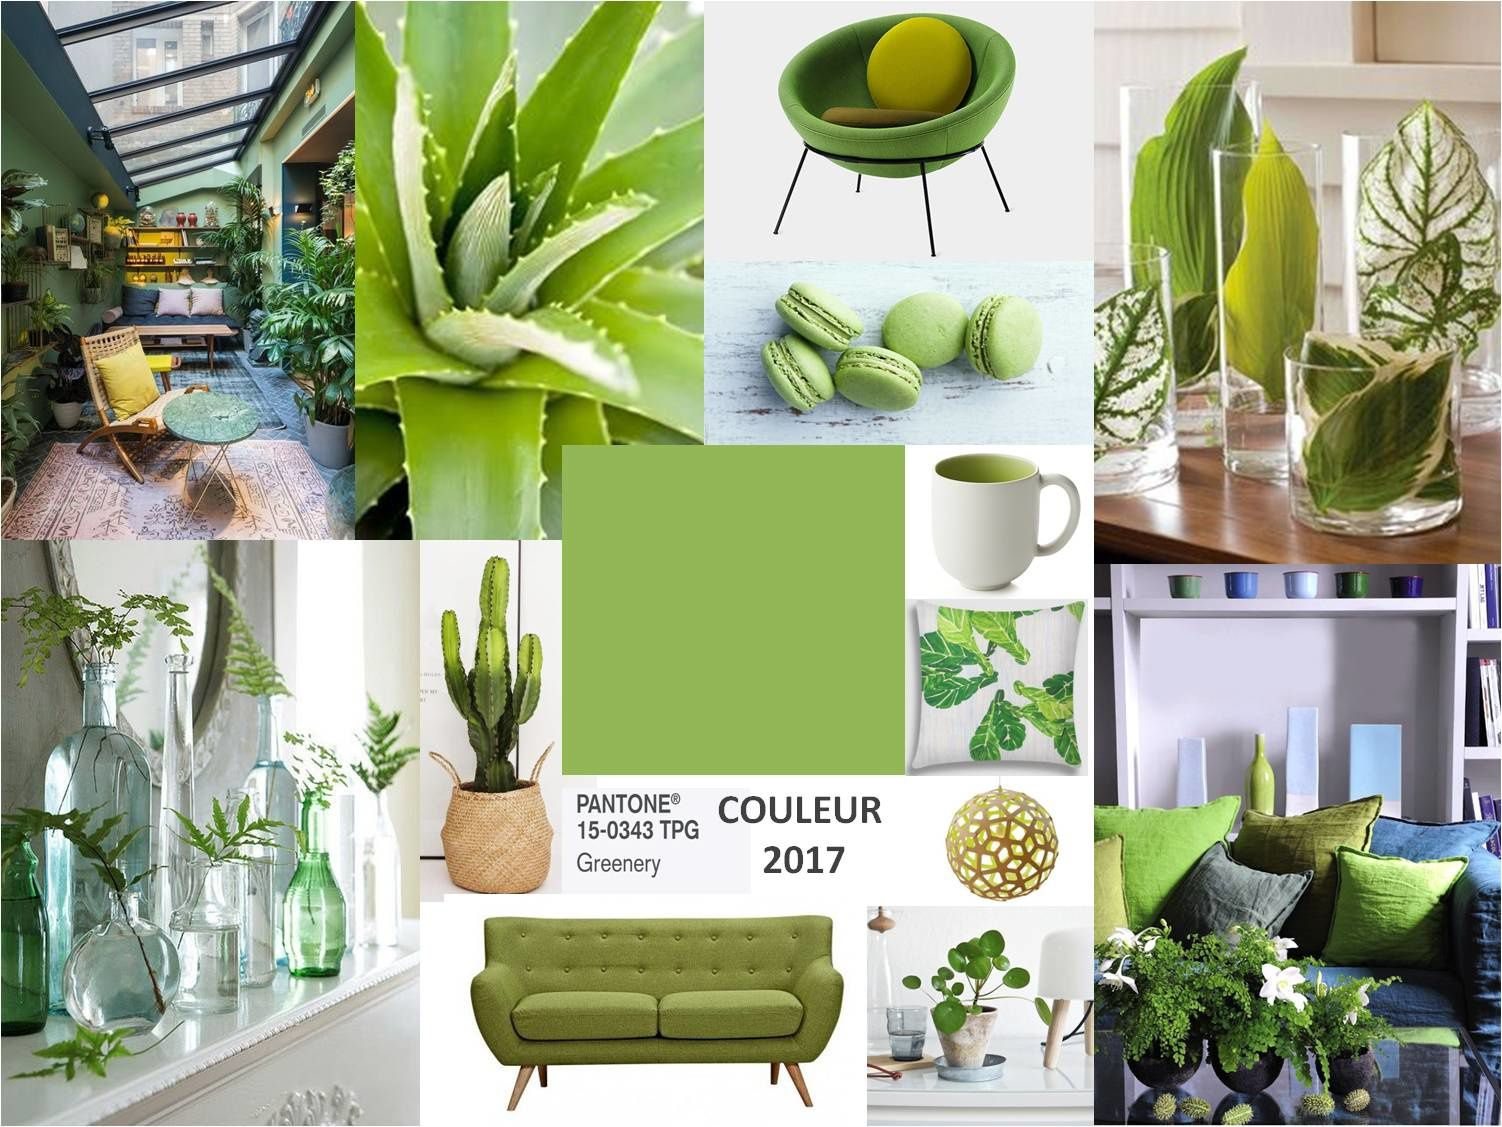 couleur pantone 2017 greenery. Black Bedroom Furniture Sets. Home Design Ideas